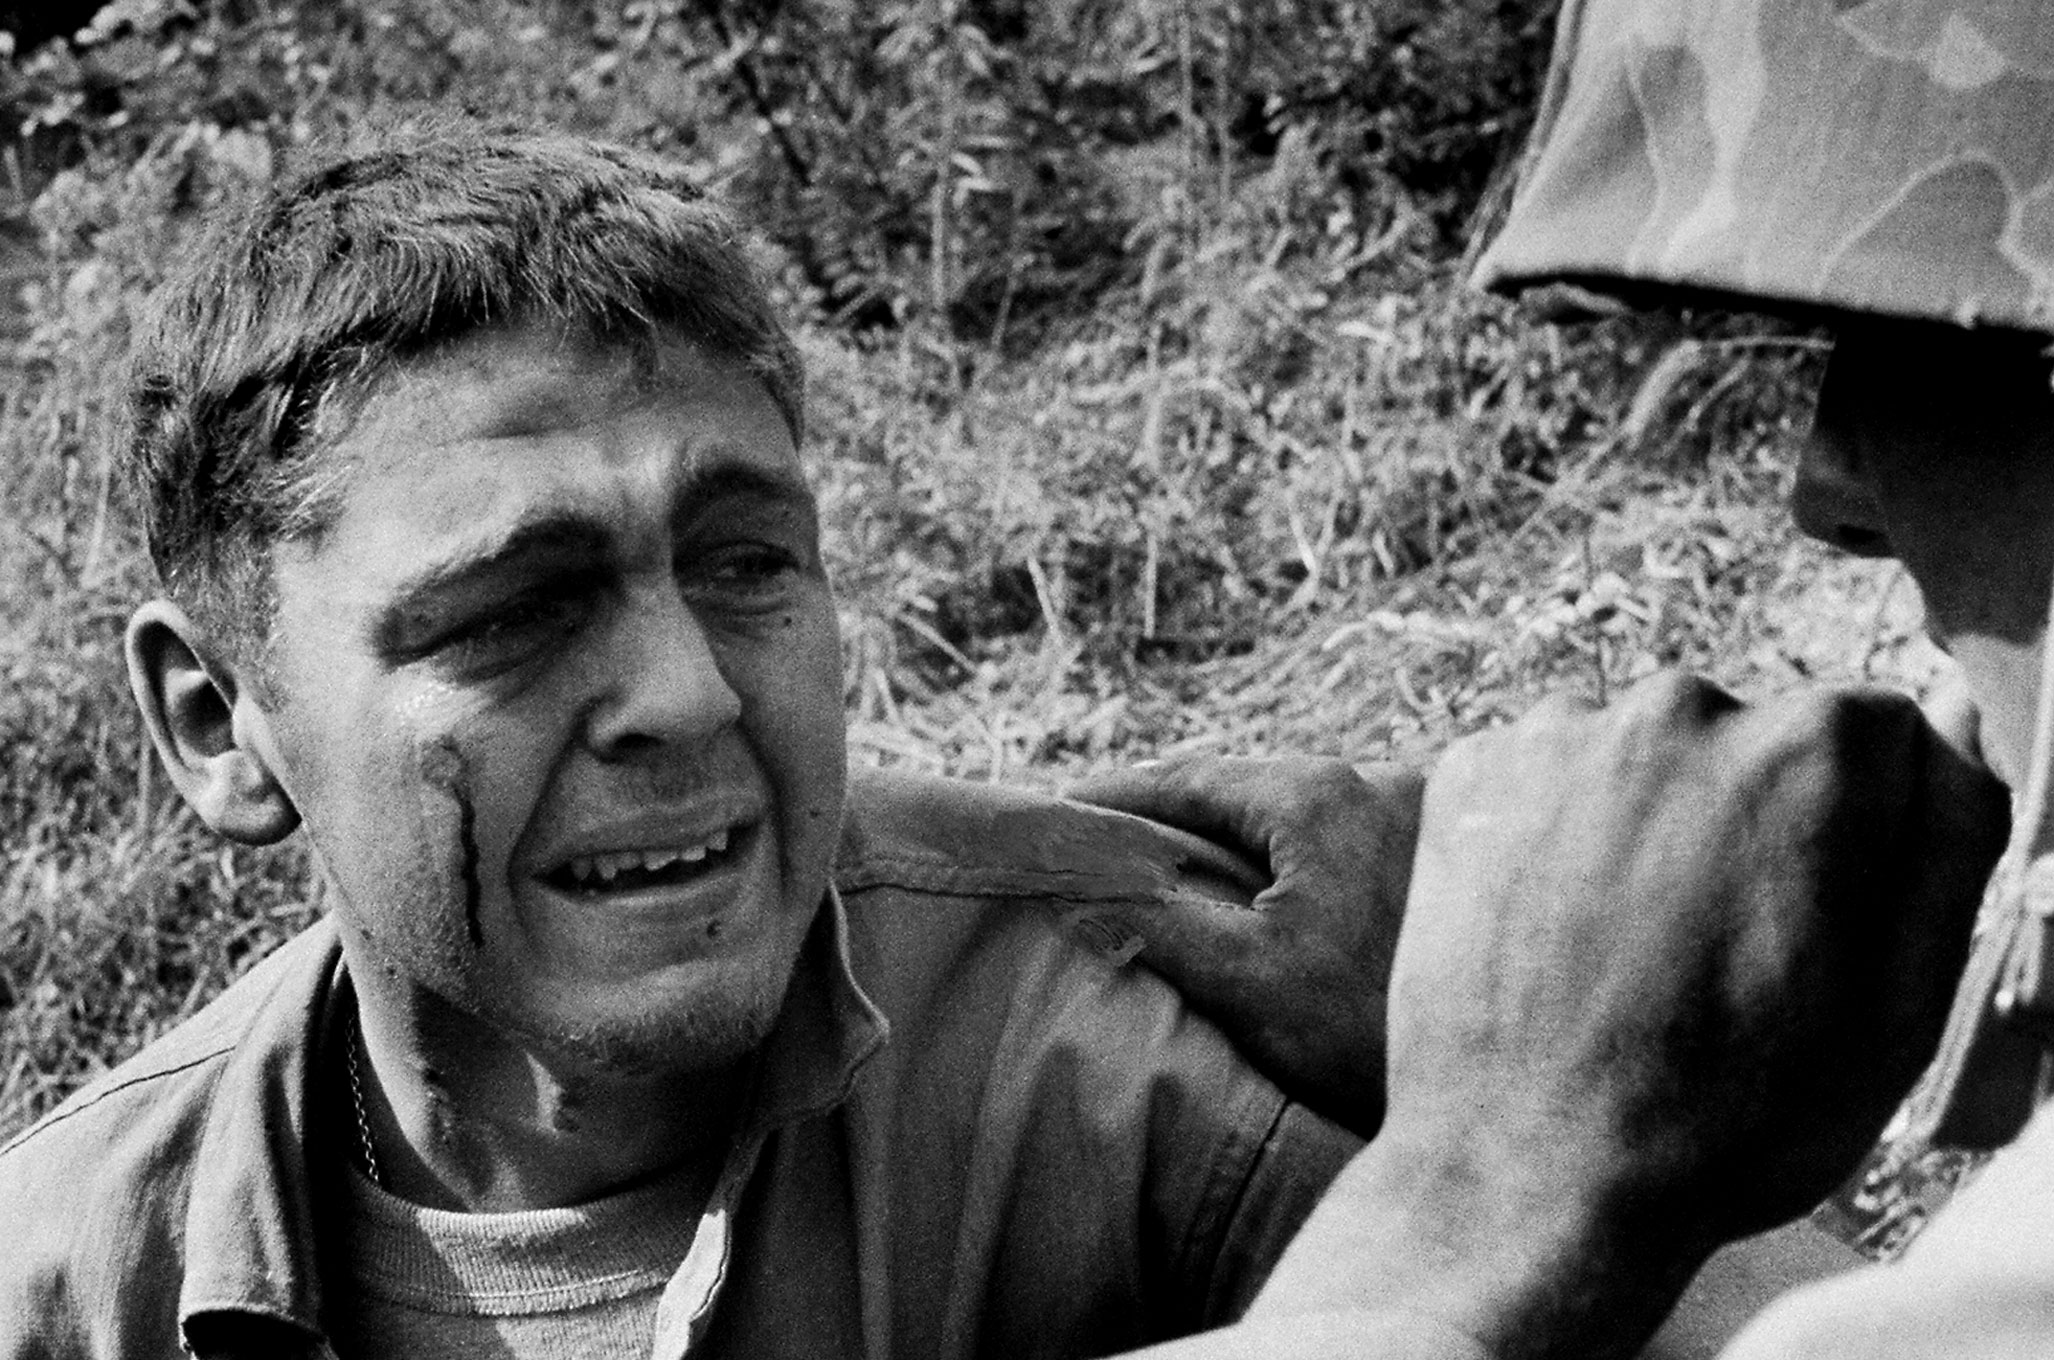 Wounded when a mine blew up his Jeep, an ambulance driver sobs by the side of the road after learning that a friend was killed in the blast, Korea 1950.